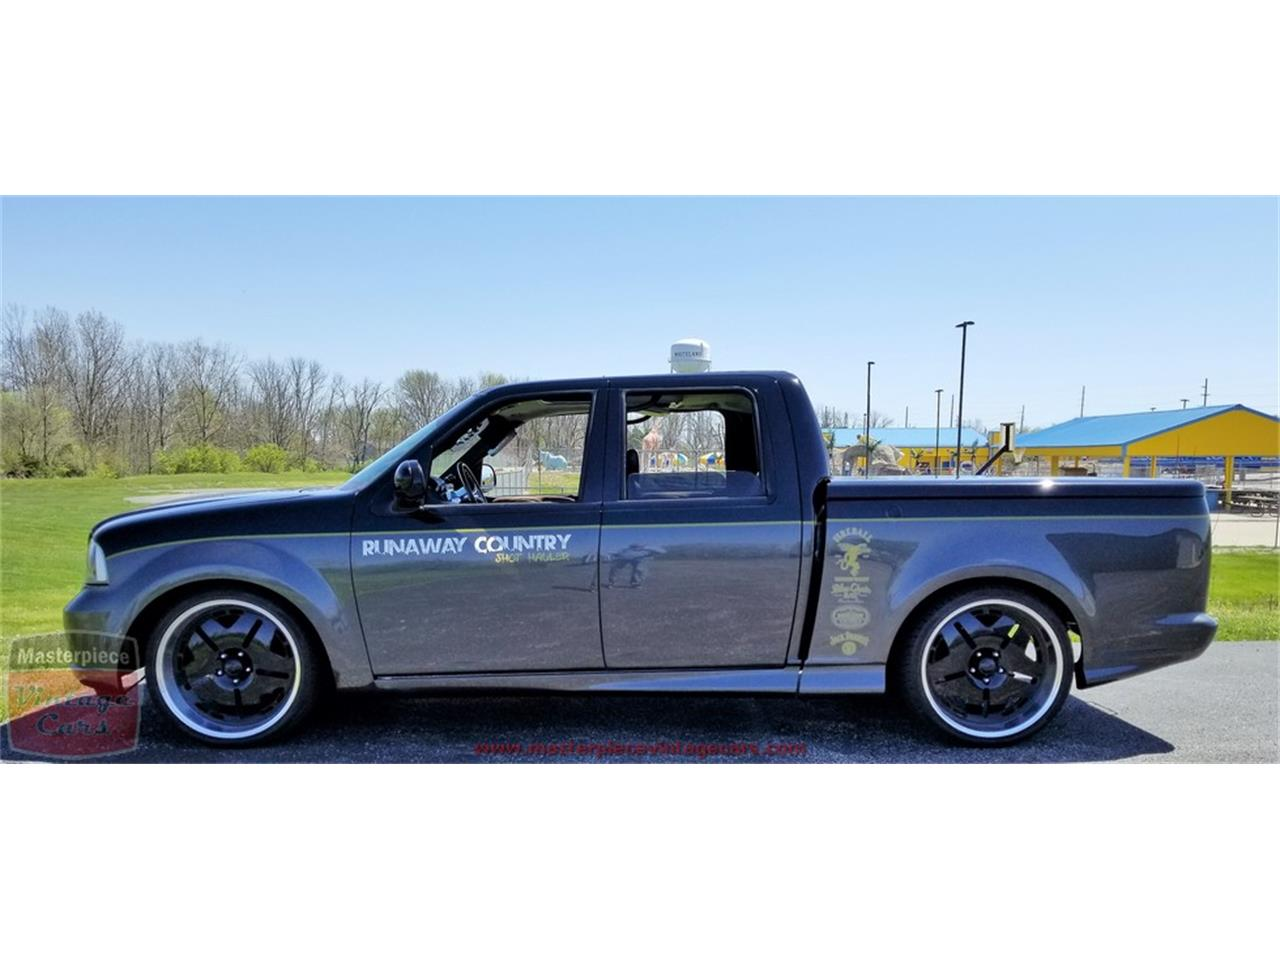 Large Picture of '03 Ford F150 located in Whiteland Indiana Offered by Masterpiece Vintage Cars - PWFY